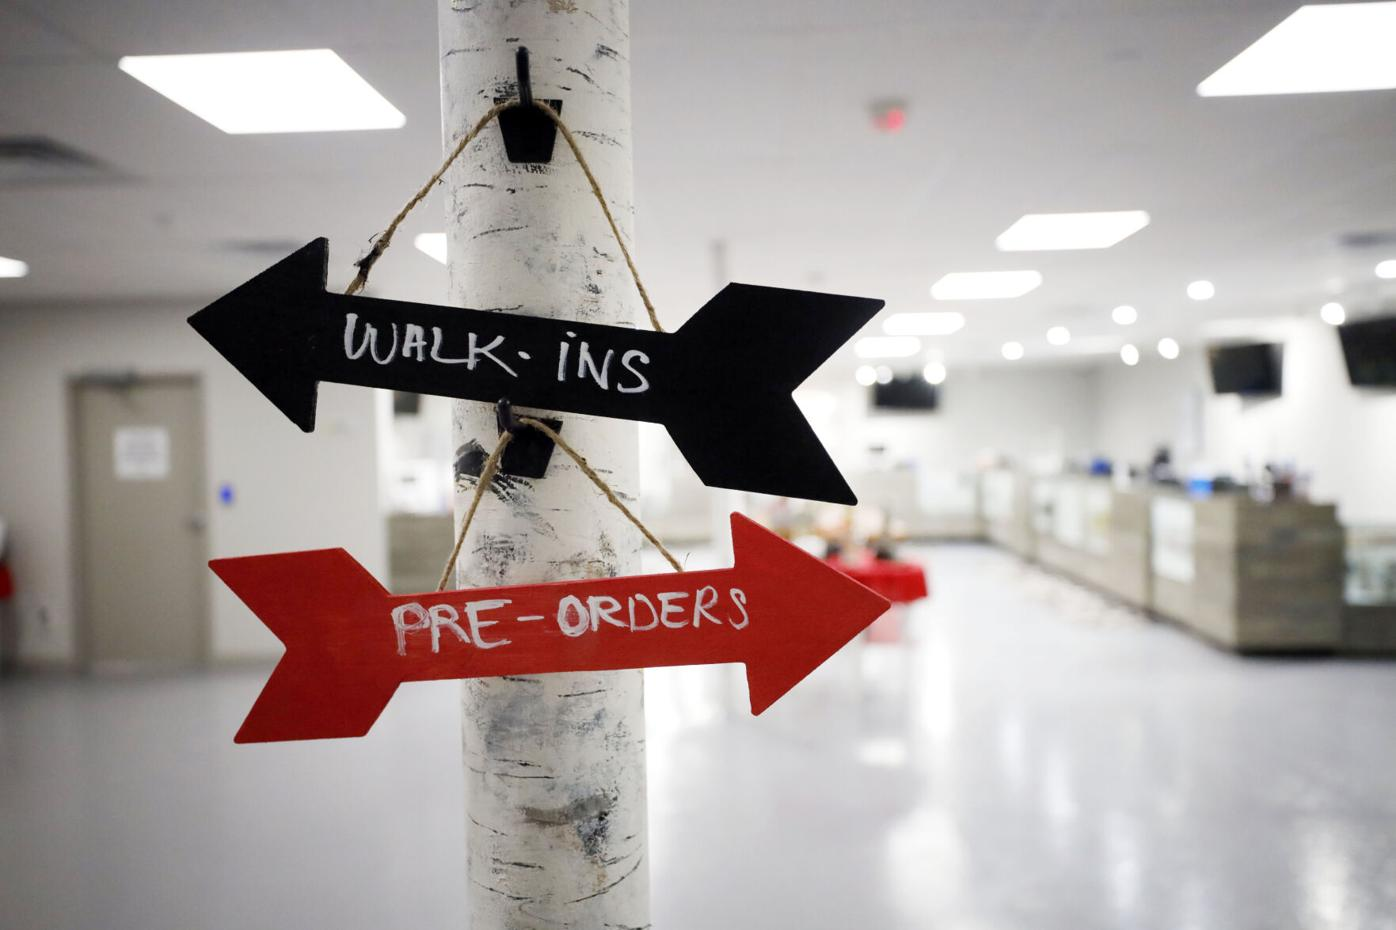 arrow signs for walk-ins and pre-orders at dispensary